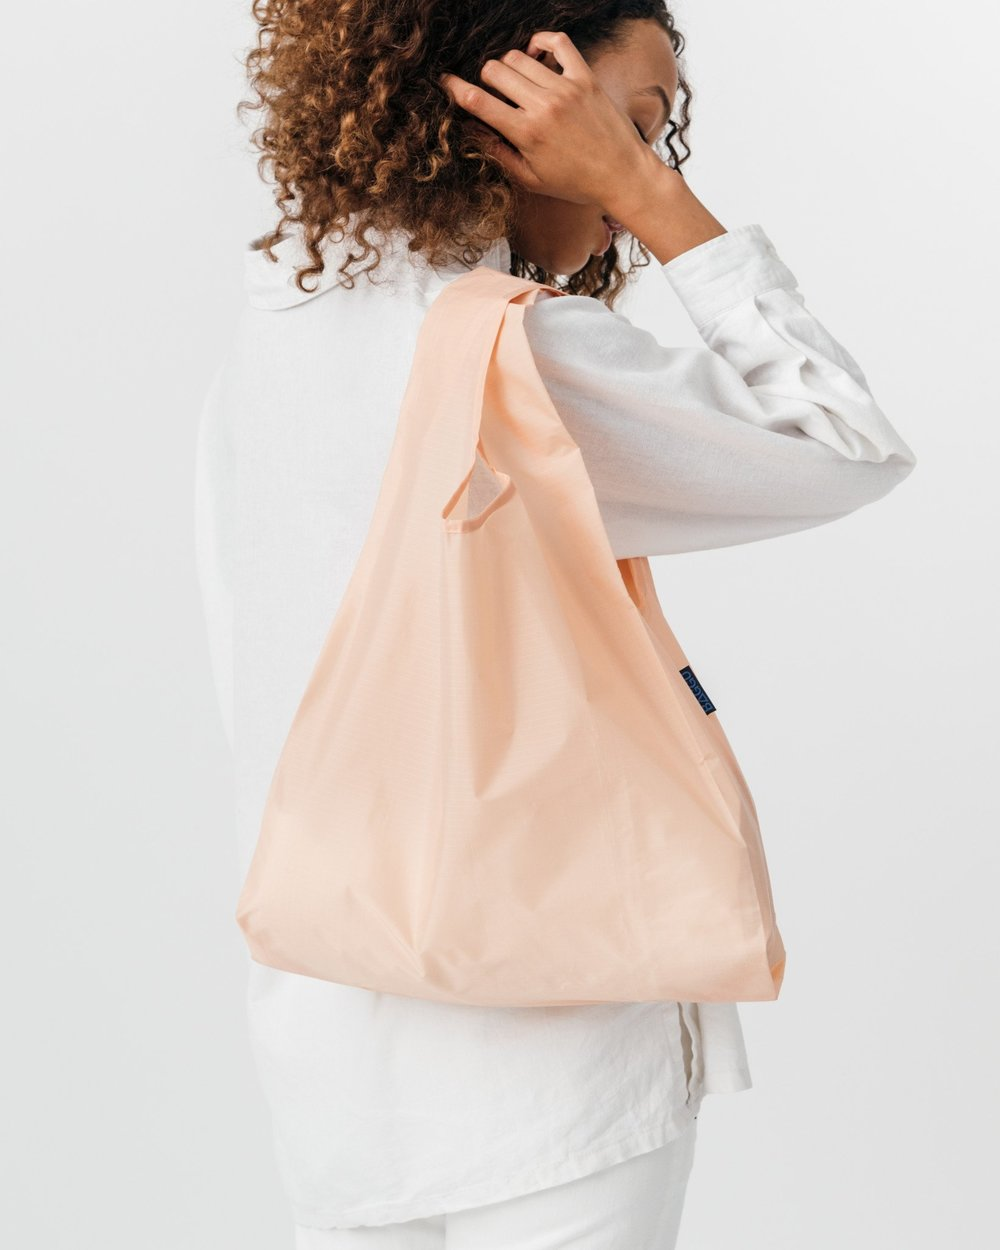 Baggu Reusable Bag on Model.jpg